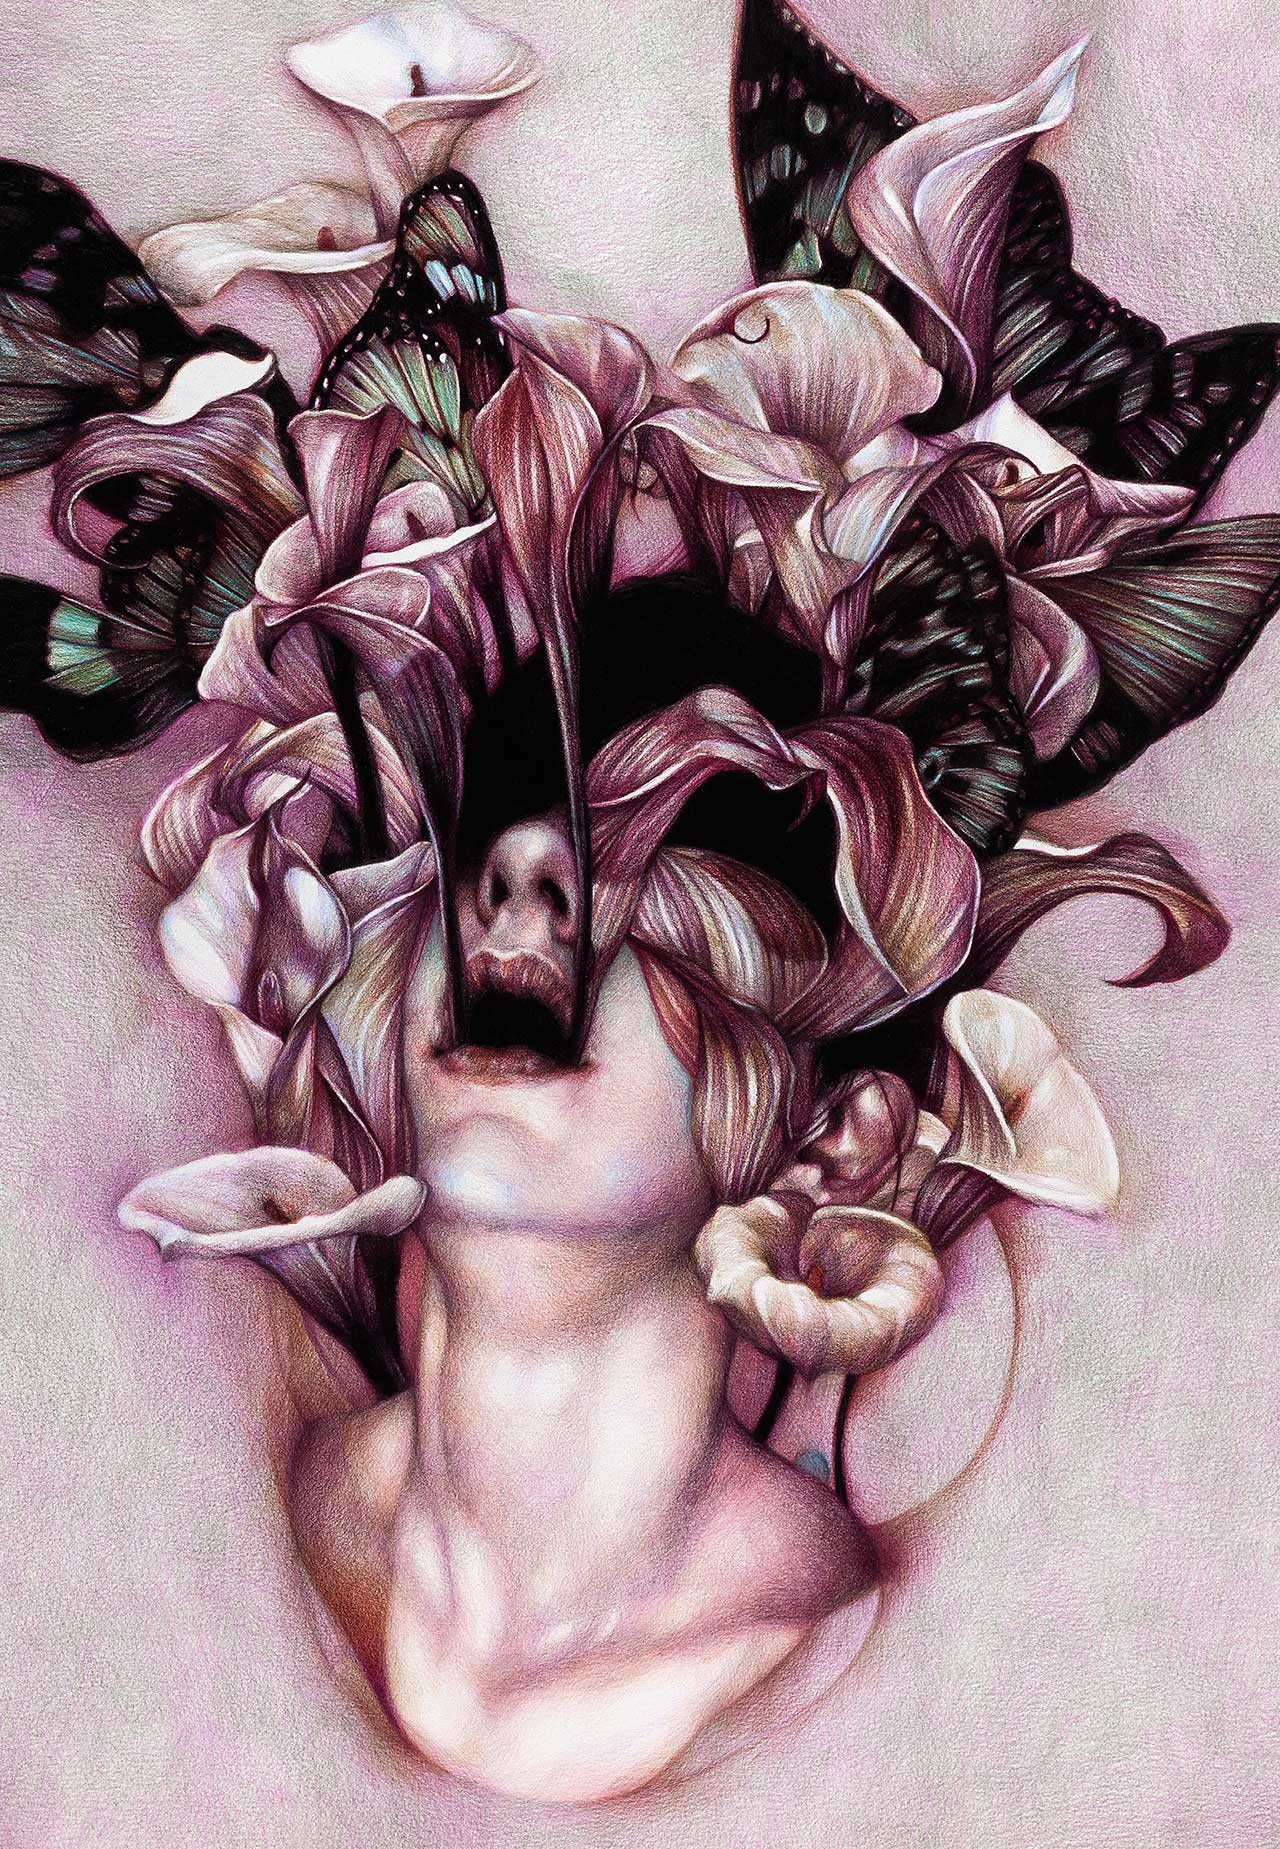 Marco Mazzoni, Euphoria, 2012. Colored pencils on paper, 65 x 45cm  © Marco Mazzoni.